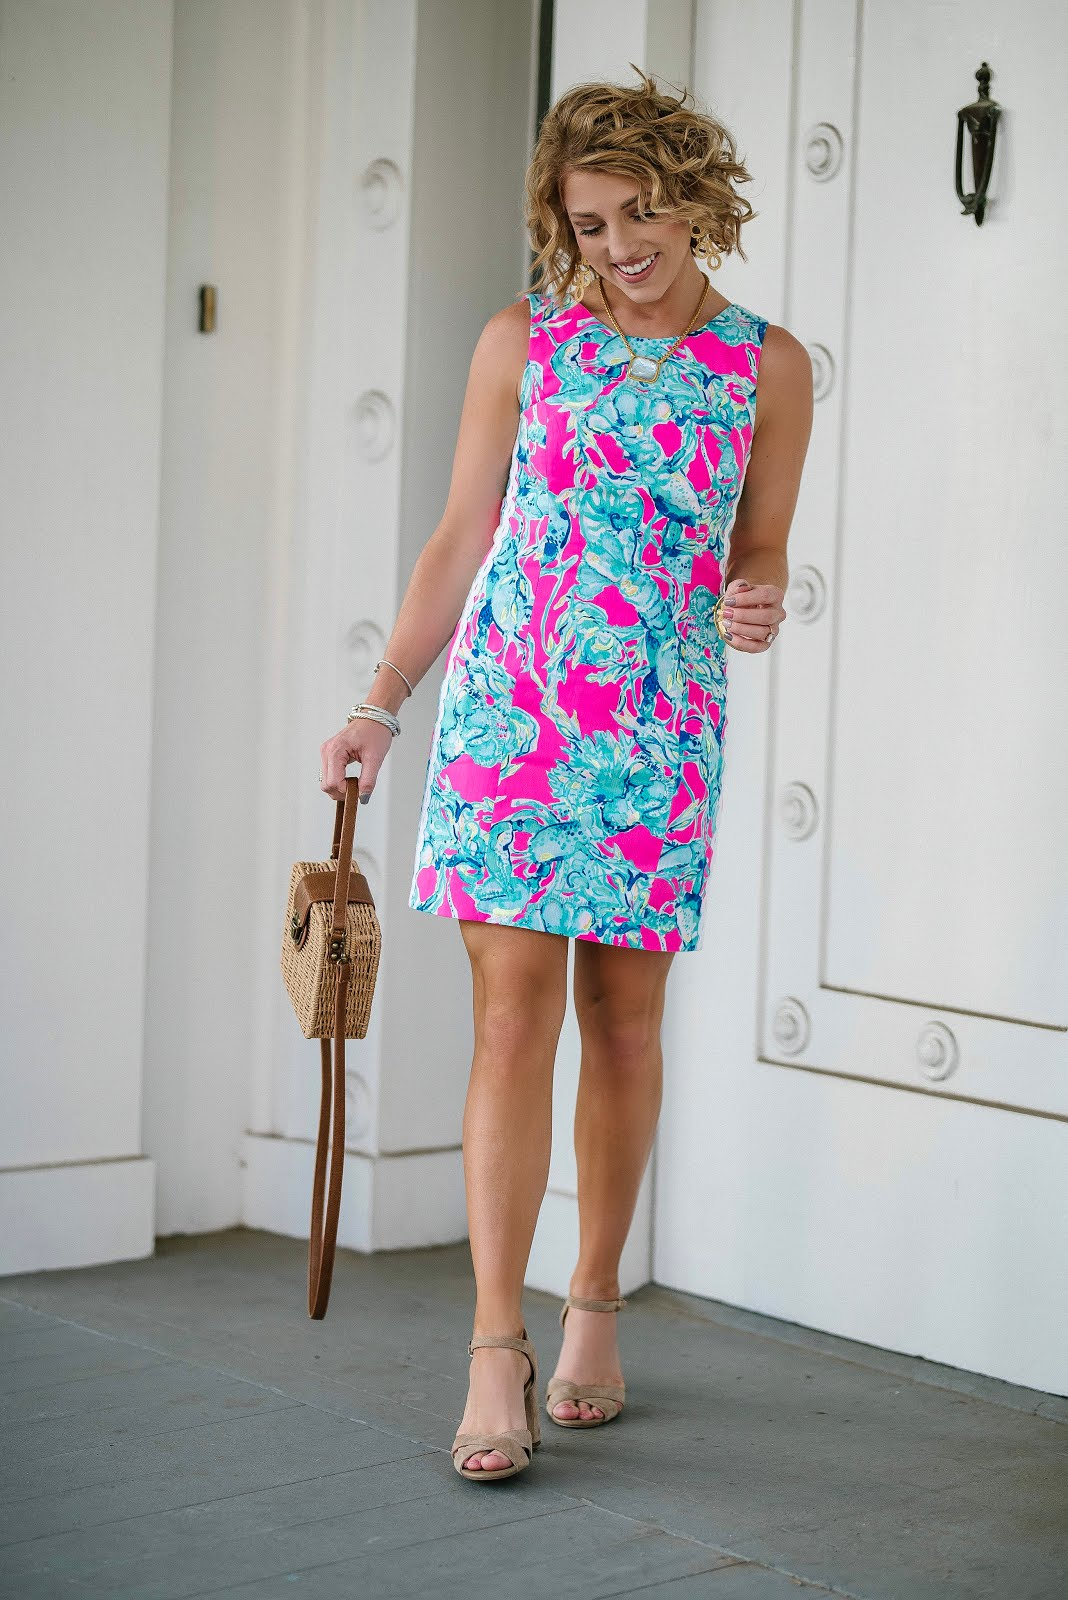 Lilly Pulitzer Mila Shift Dress in Lobsters in Love - Something Delightful Blog